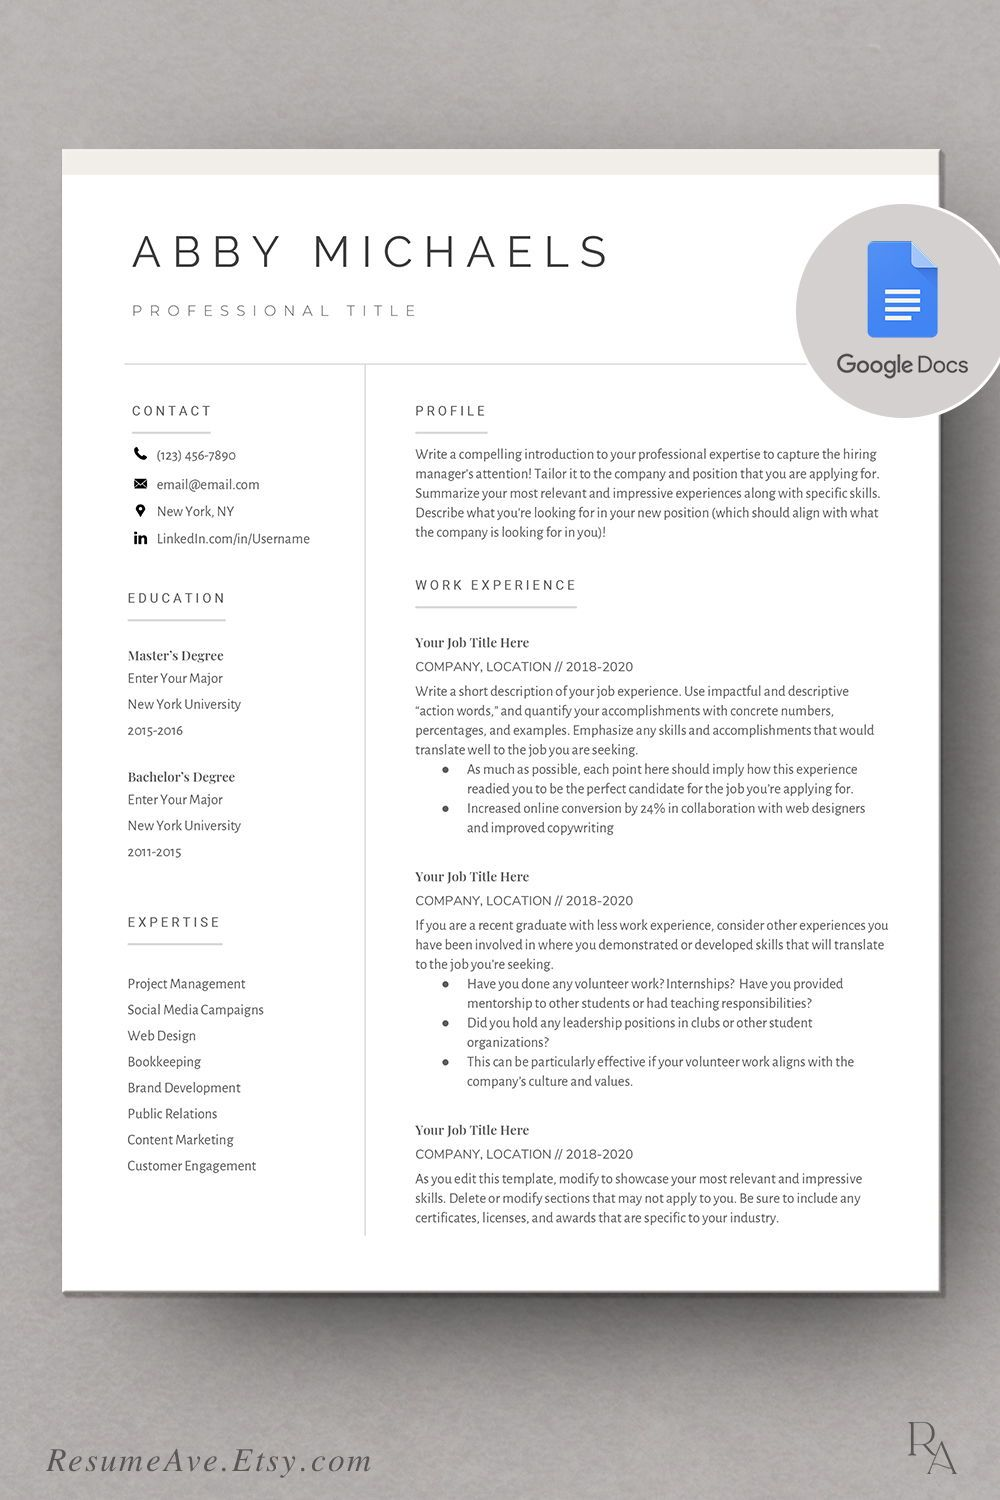 Modern Google Docs Resume Cv Template Nurse Resume Cv Design With Cover Letter Instant Download Executive Resume And Curriculum Vitae Resume Nursing Resume Template Executive Resume